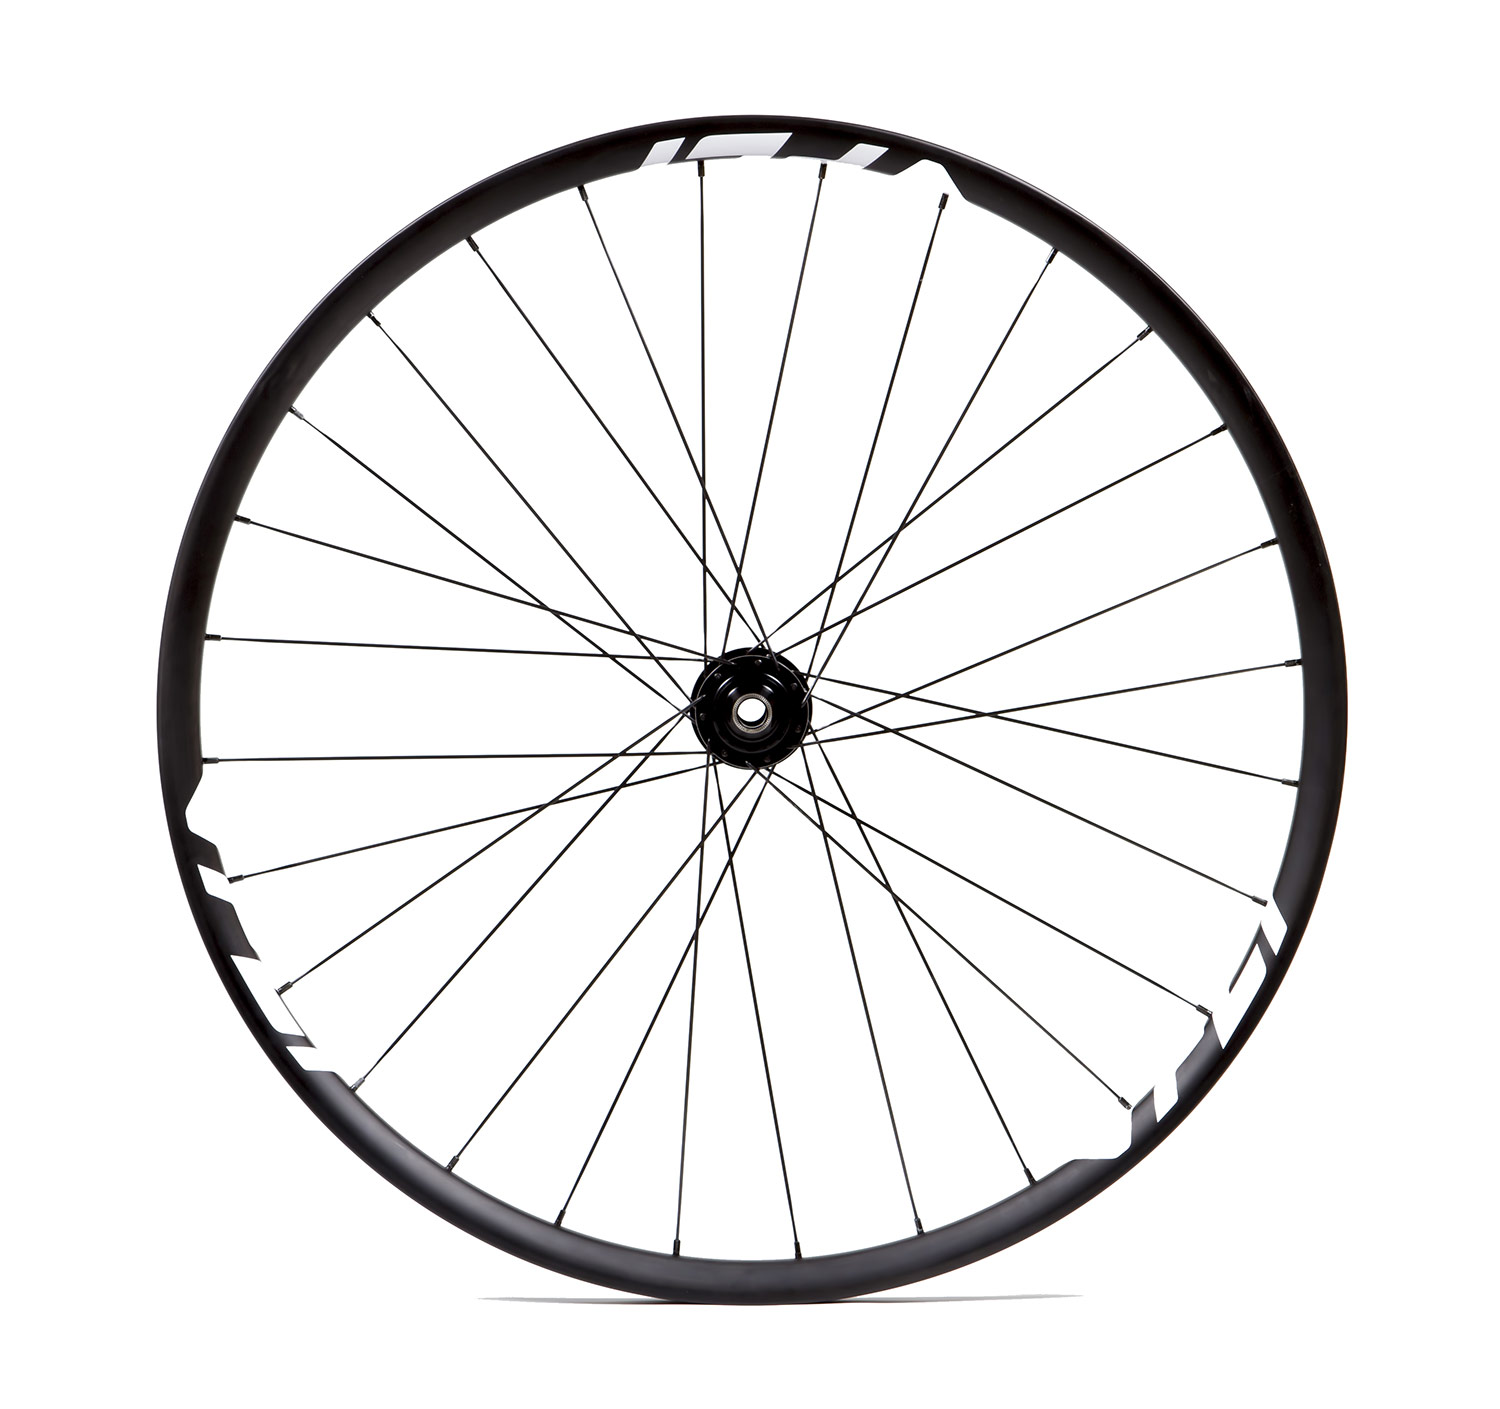 fly wheels and super fly wheels How a lightweight flywheel works how does a lightweight flywheel work amongst the majority, there are two schools of thought concerning light flywheels.